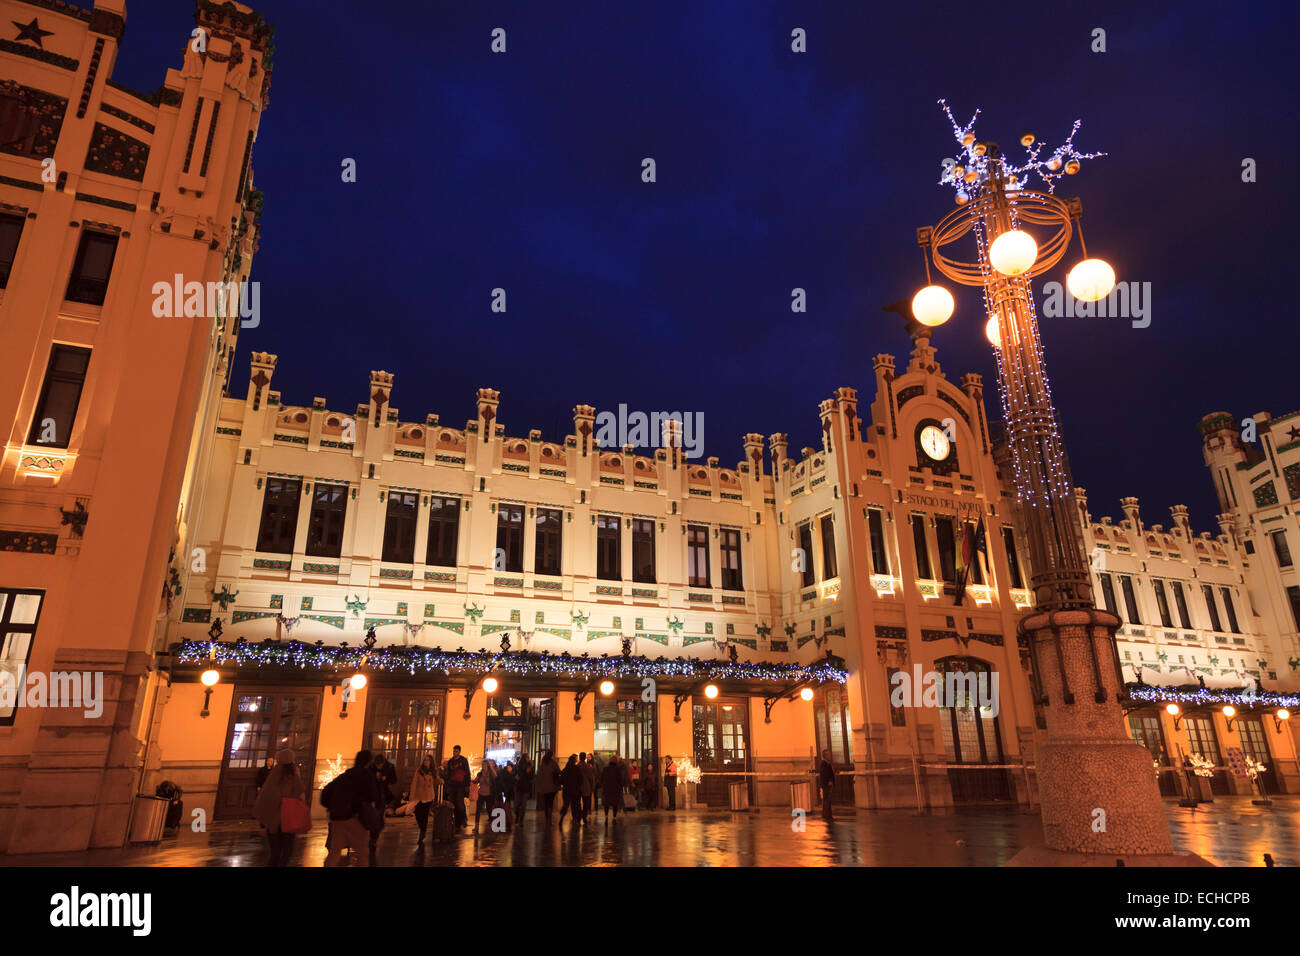 Travellers entering the exterior of the main railway station Estacio del Nord in Valencia lit up on a rainy night - Stock Image